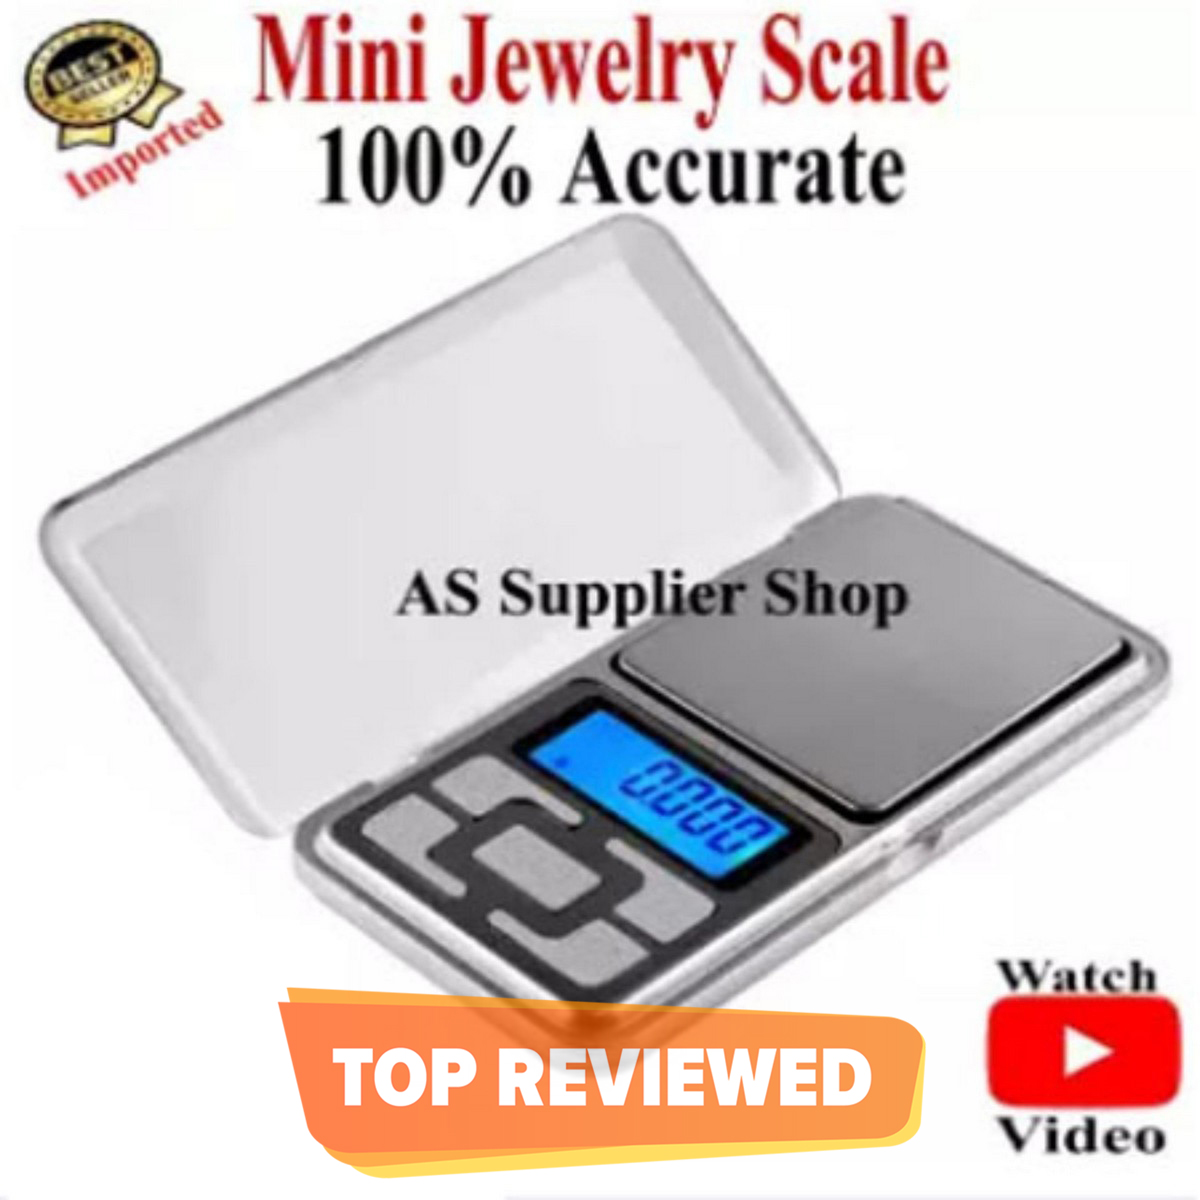 Best Quality Electronic Digital Kitchen Scale Digital Weight Machine Digital Weight Scale Digital Weighing Scale Digital Weighing Machine Digital Mini Scale Small Scale Weight Machine Digital Pocket Scale Table Jewelry Vegetable Fruit Scale Weight Machine